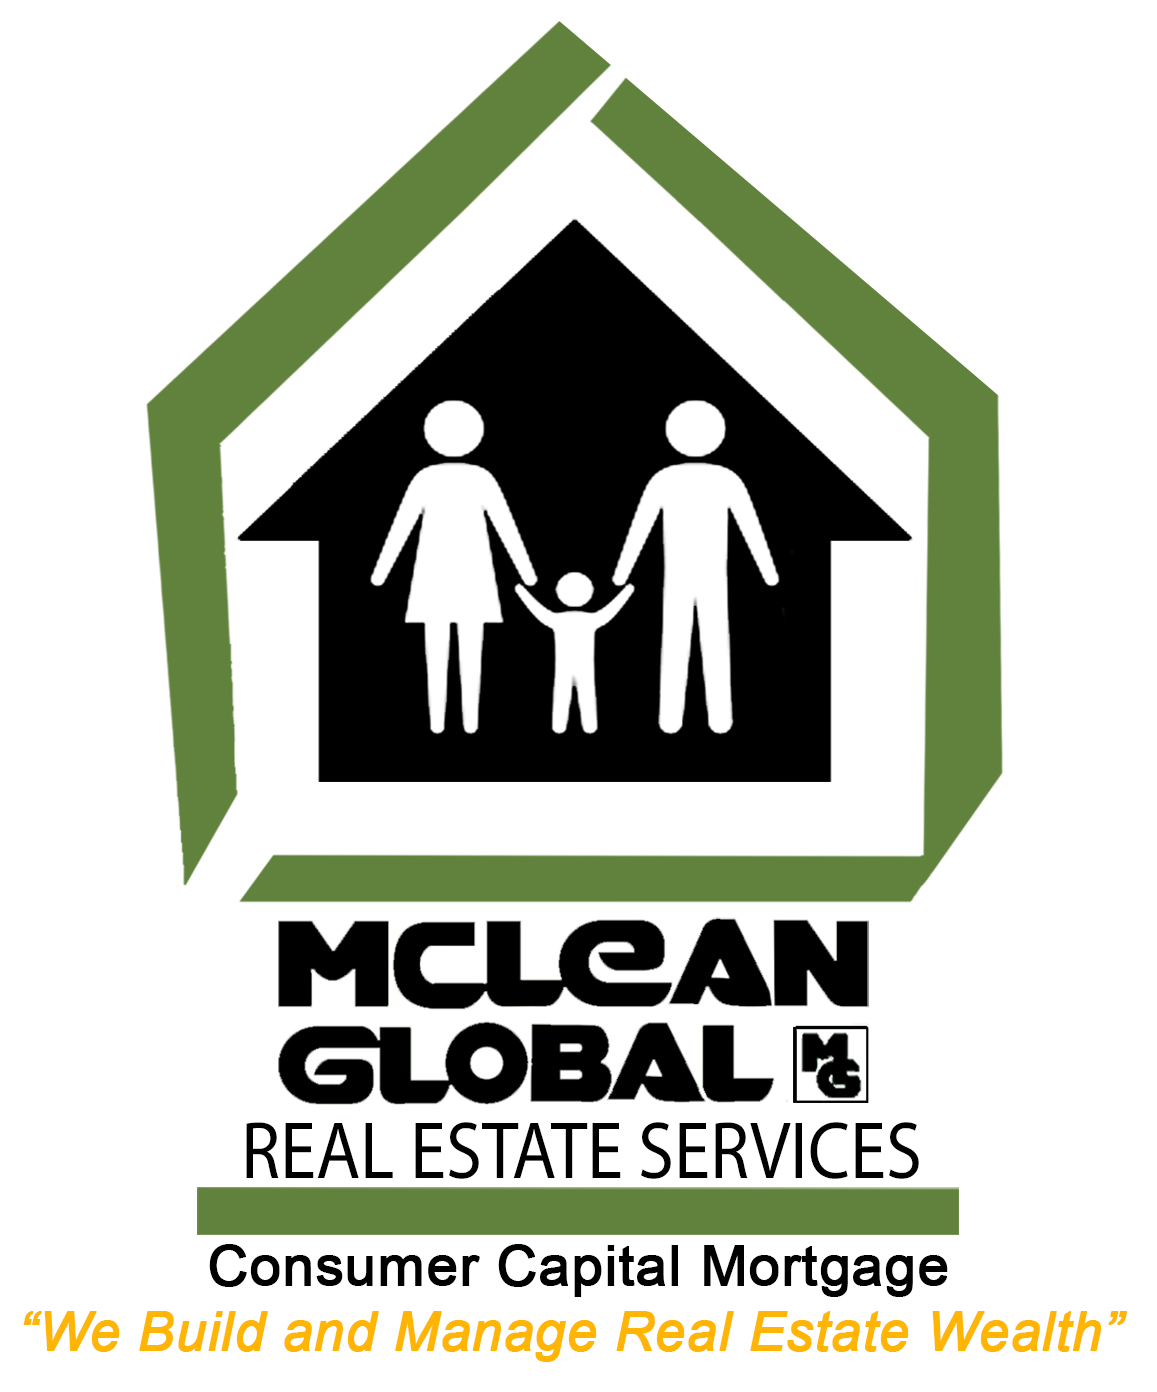 McLean Global Real Estate Service - Caribbean Value Investor